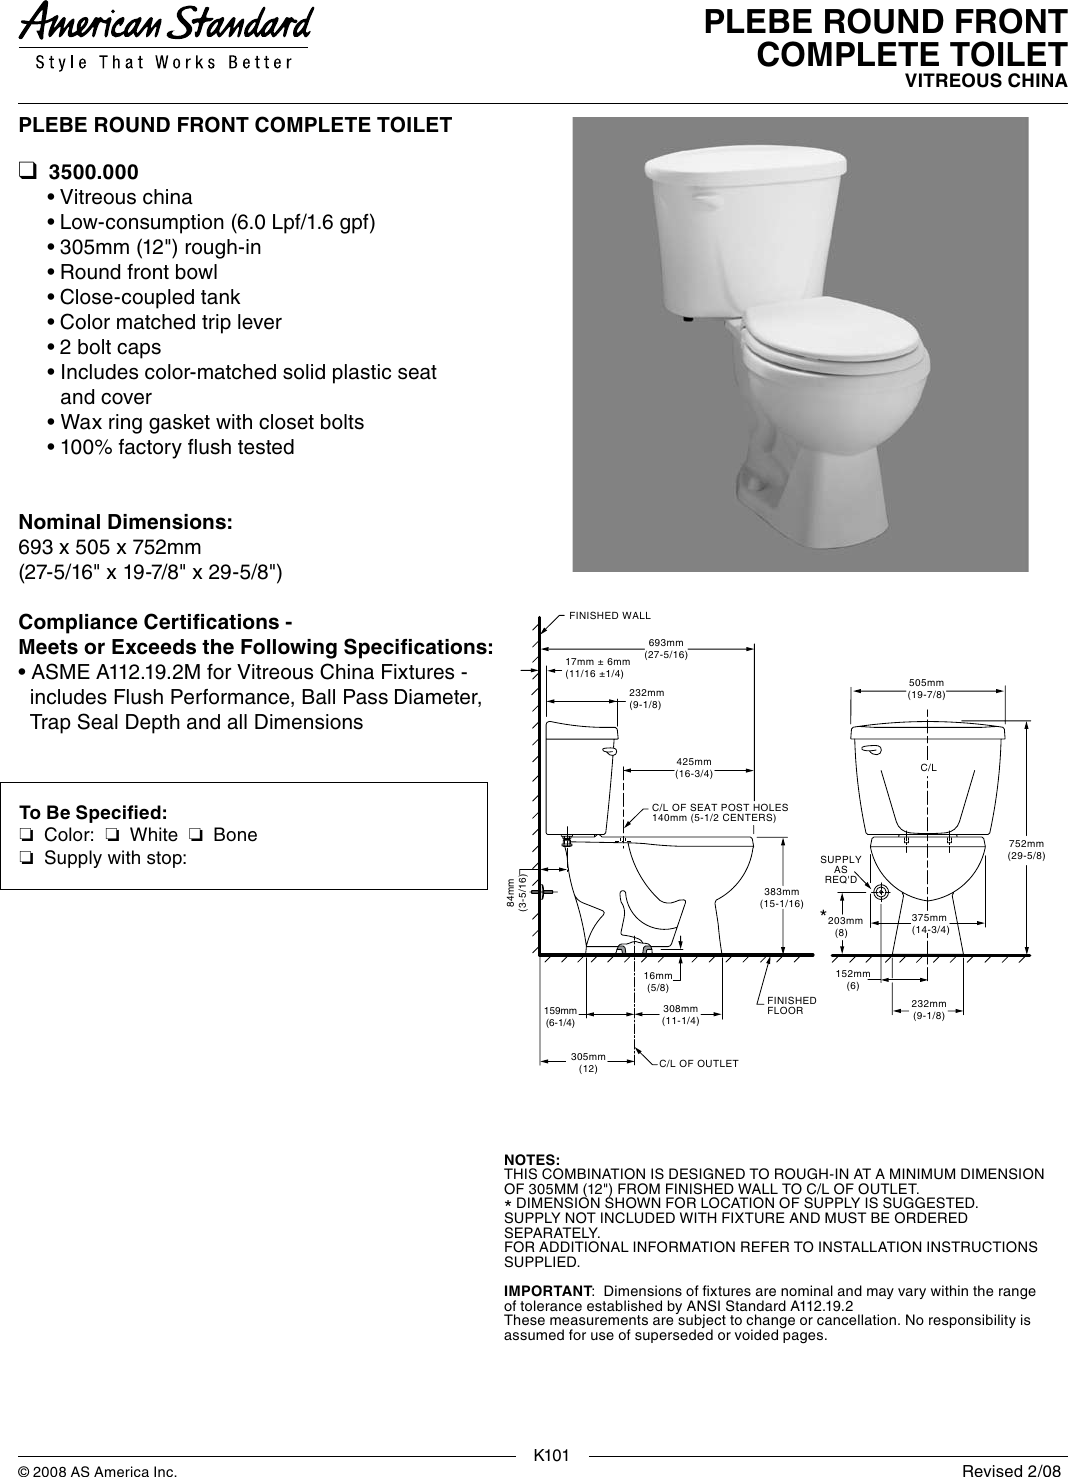 American Standard Plebe Round Front Toilet 3500 000 Users